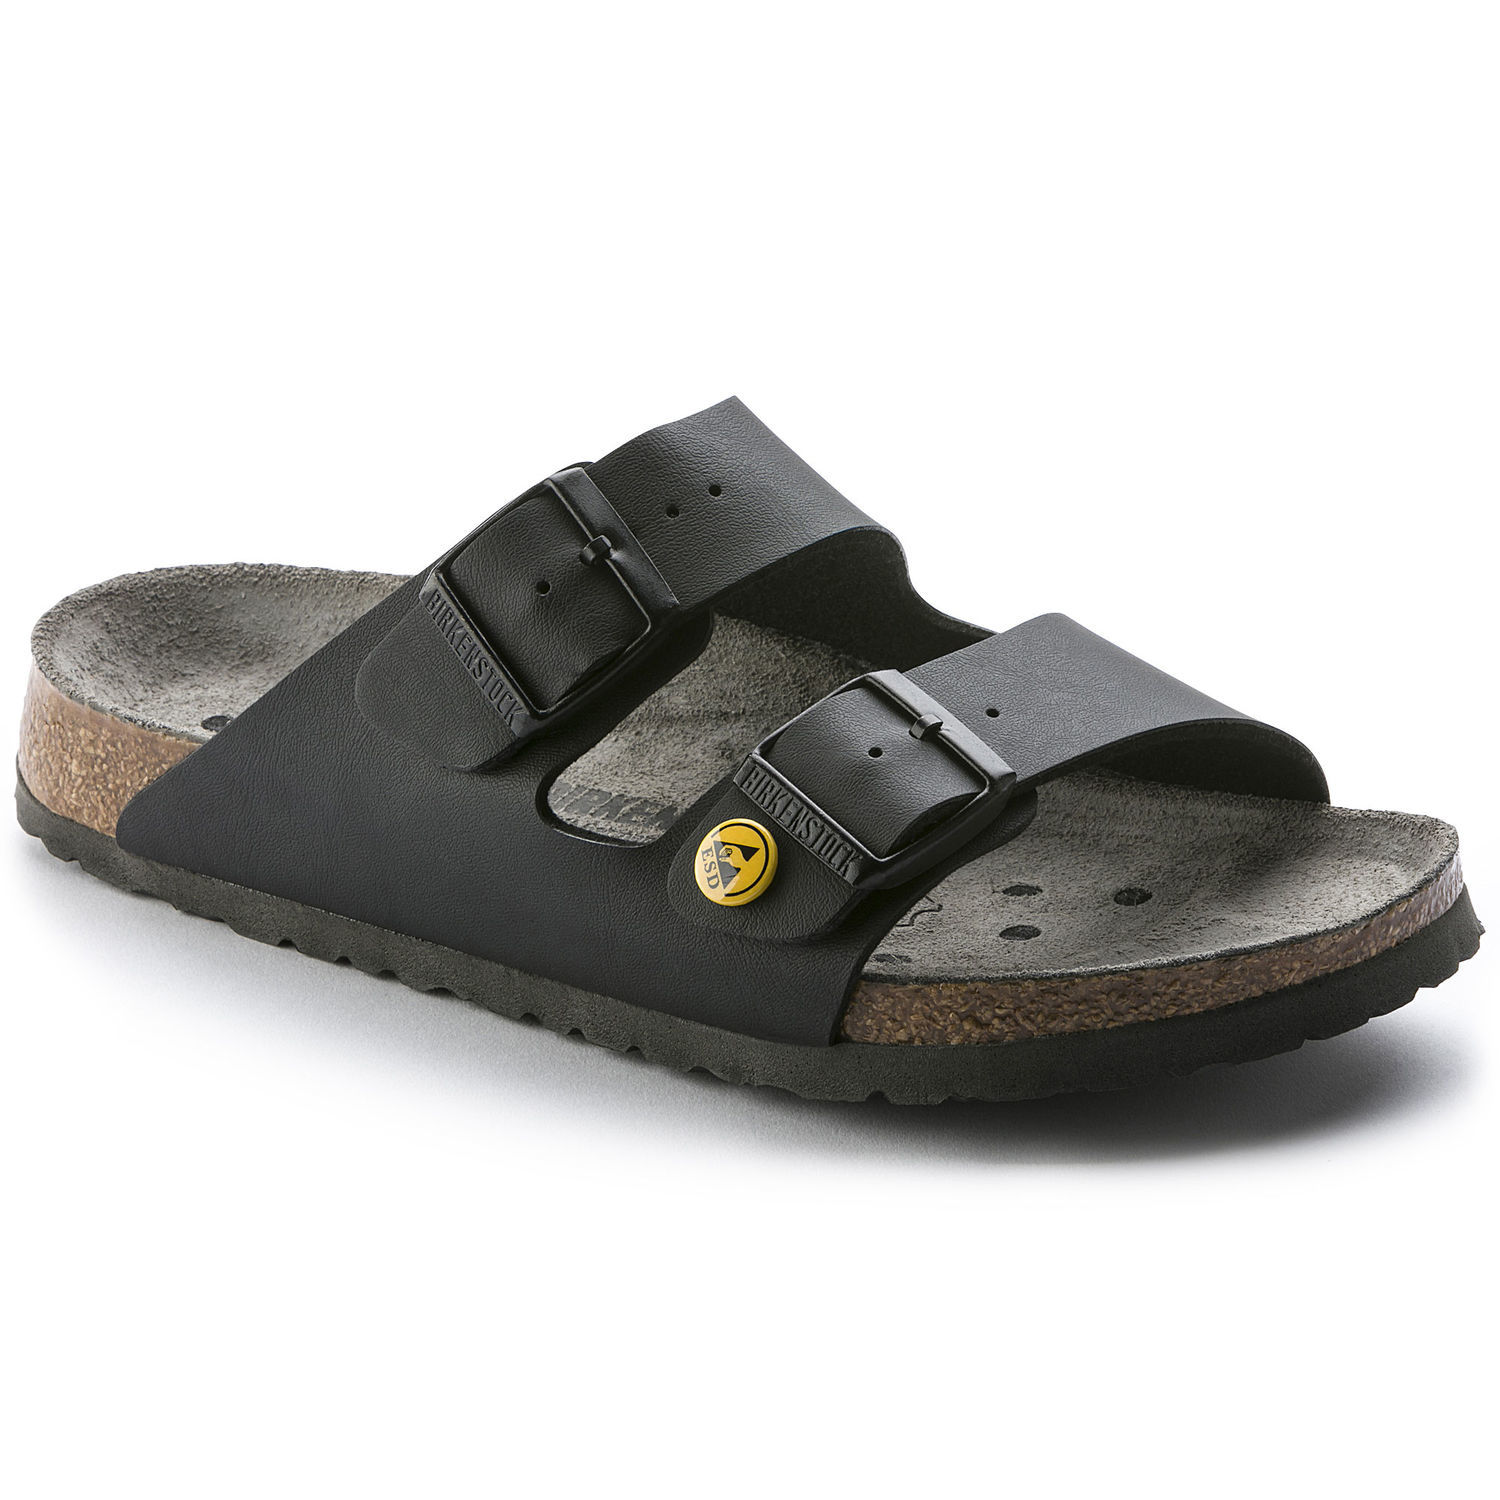 Image of   Sort Arizona ESD sandal fra Birkenstock - 43